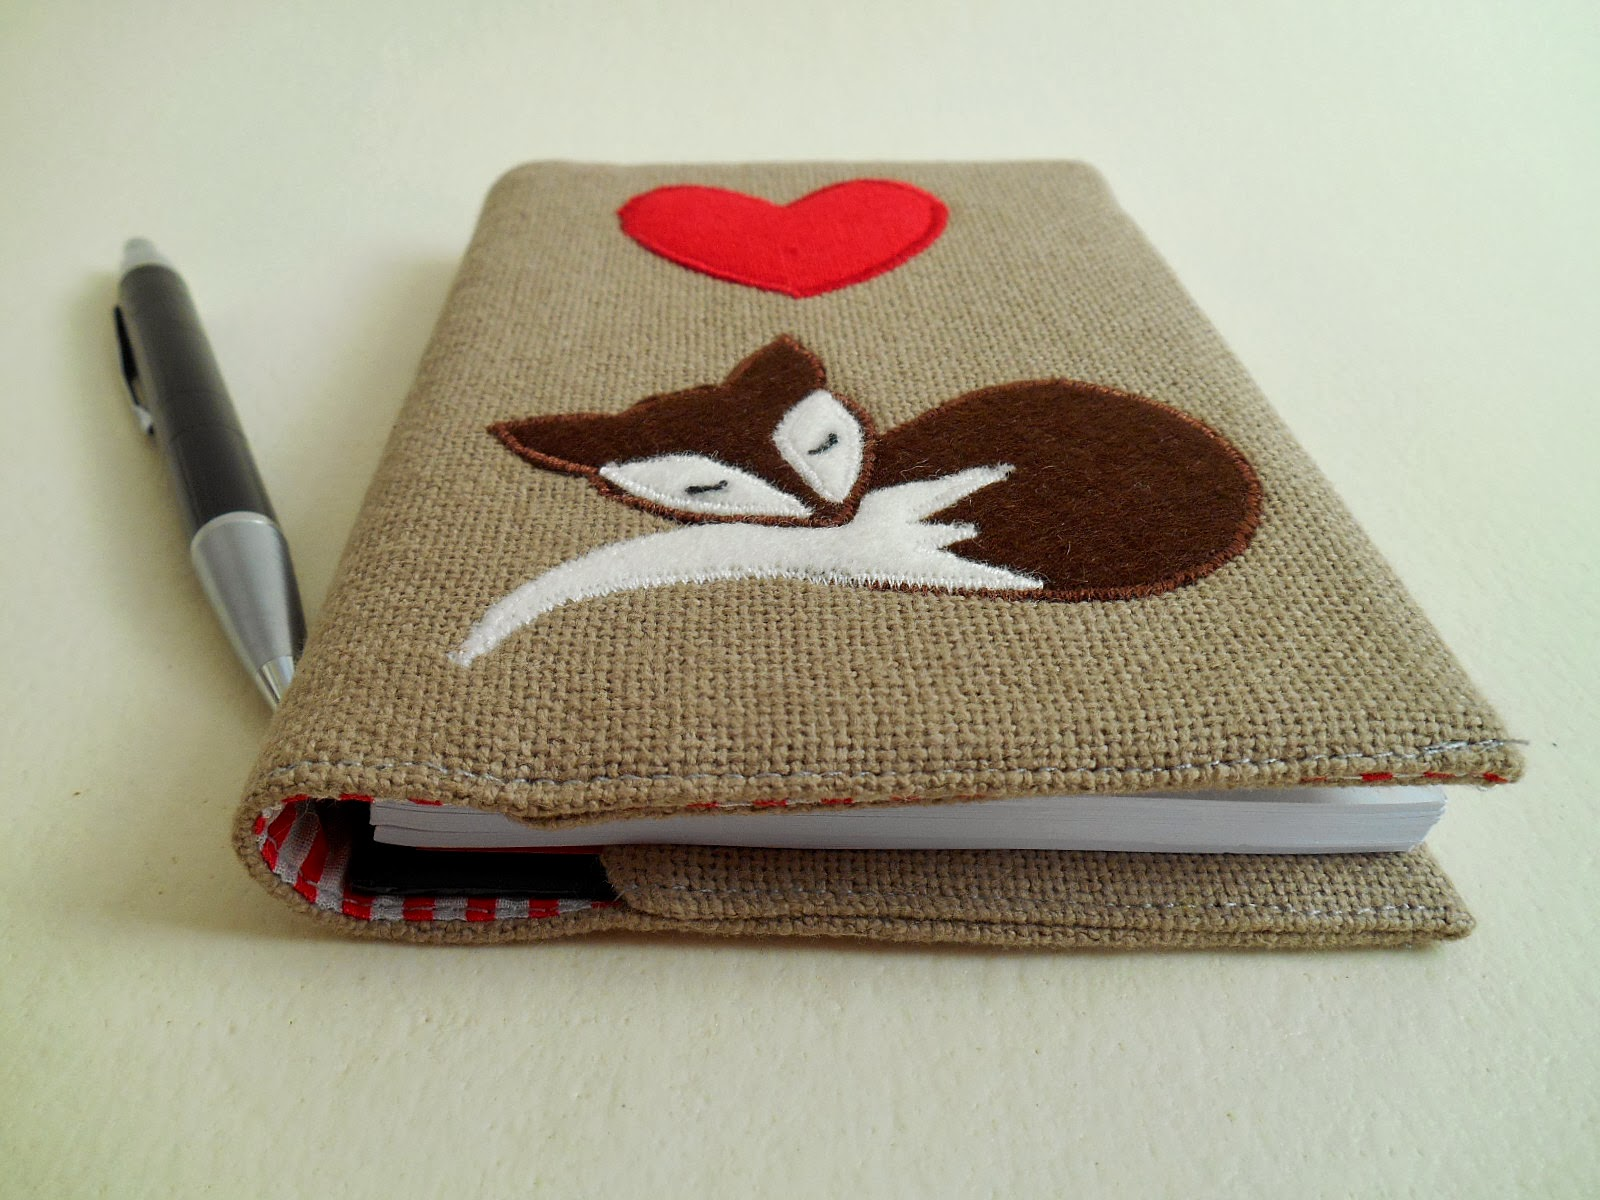 Fox and heart fabric cover for notebook